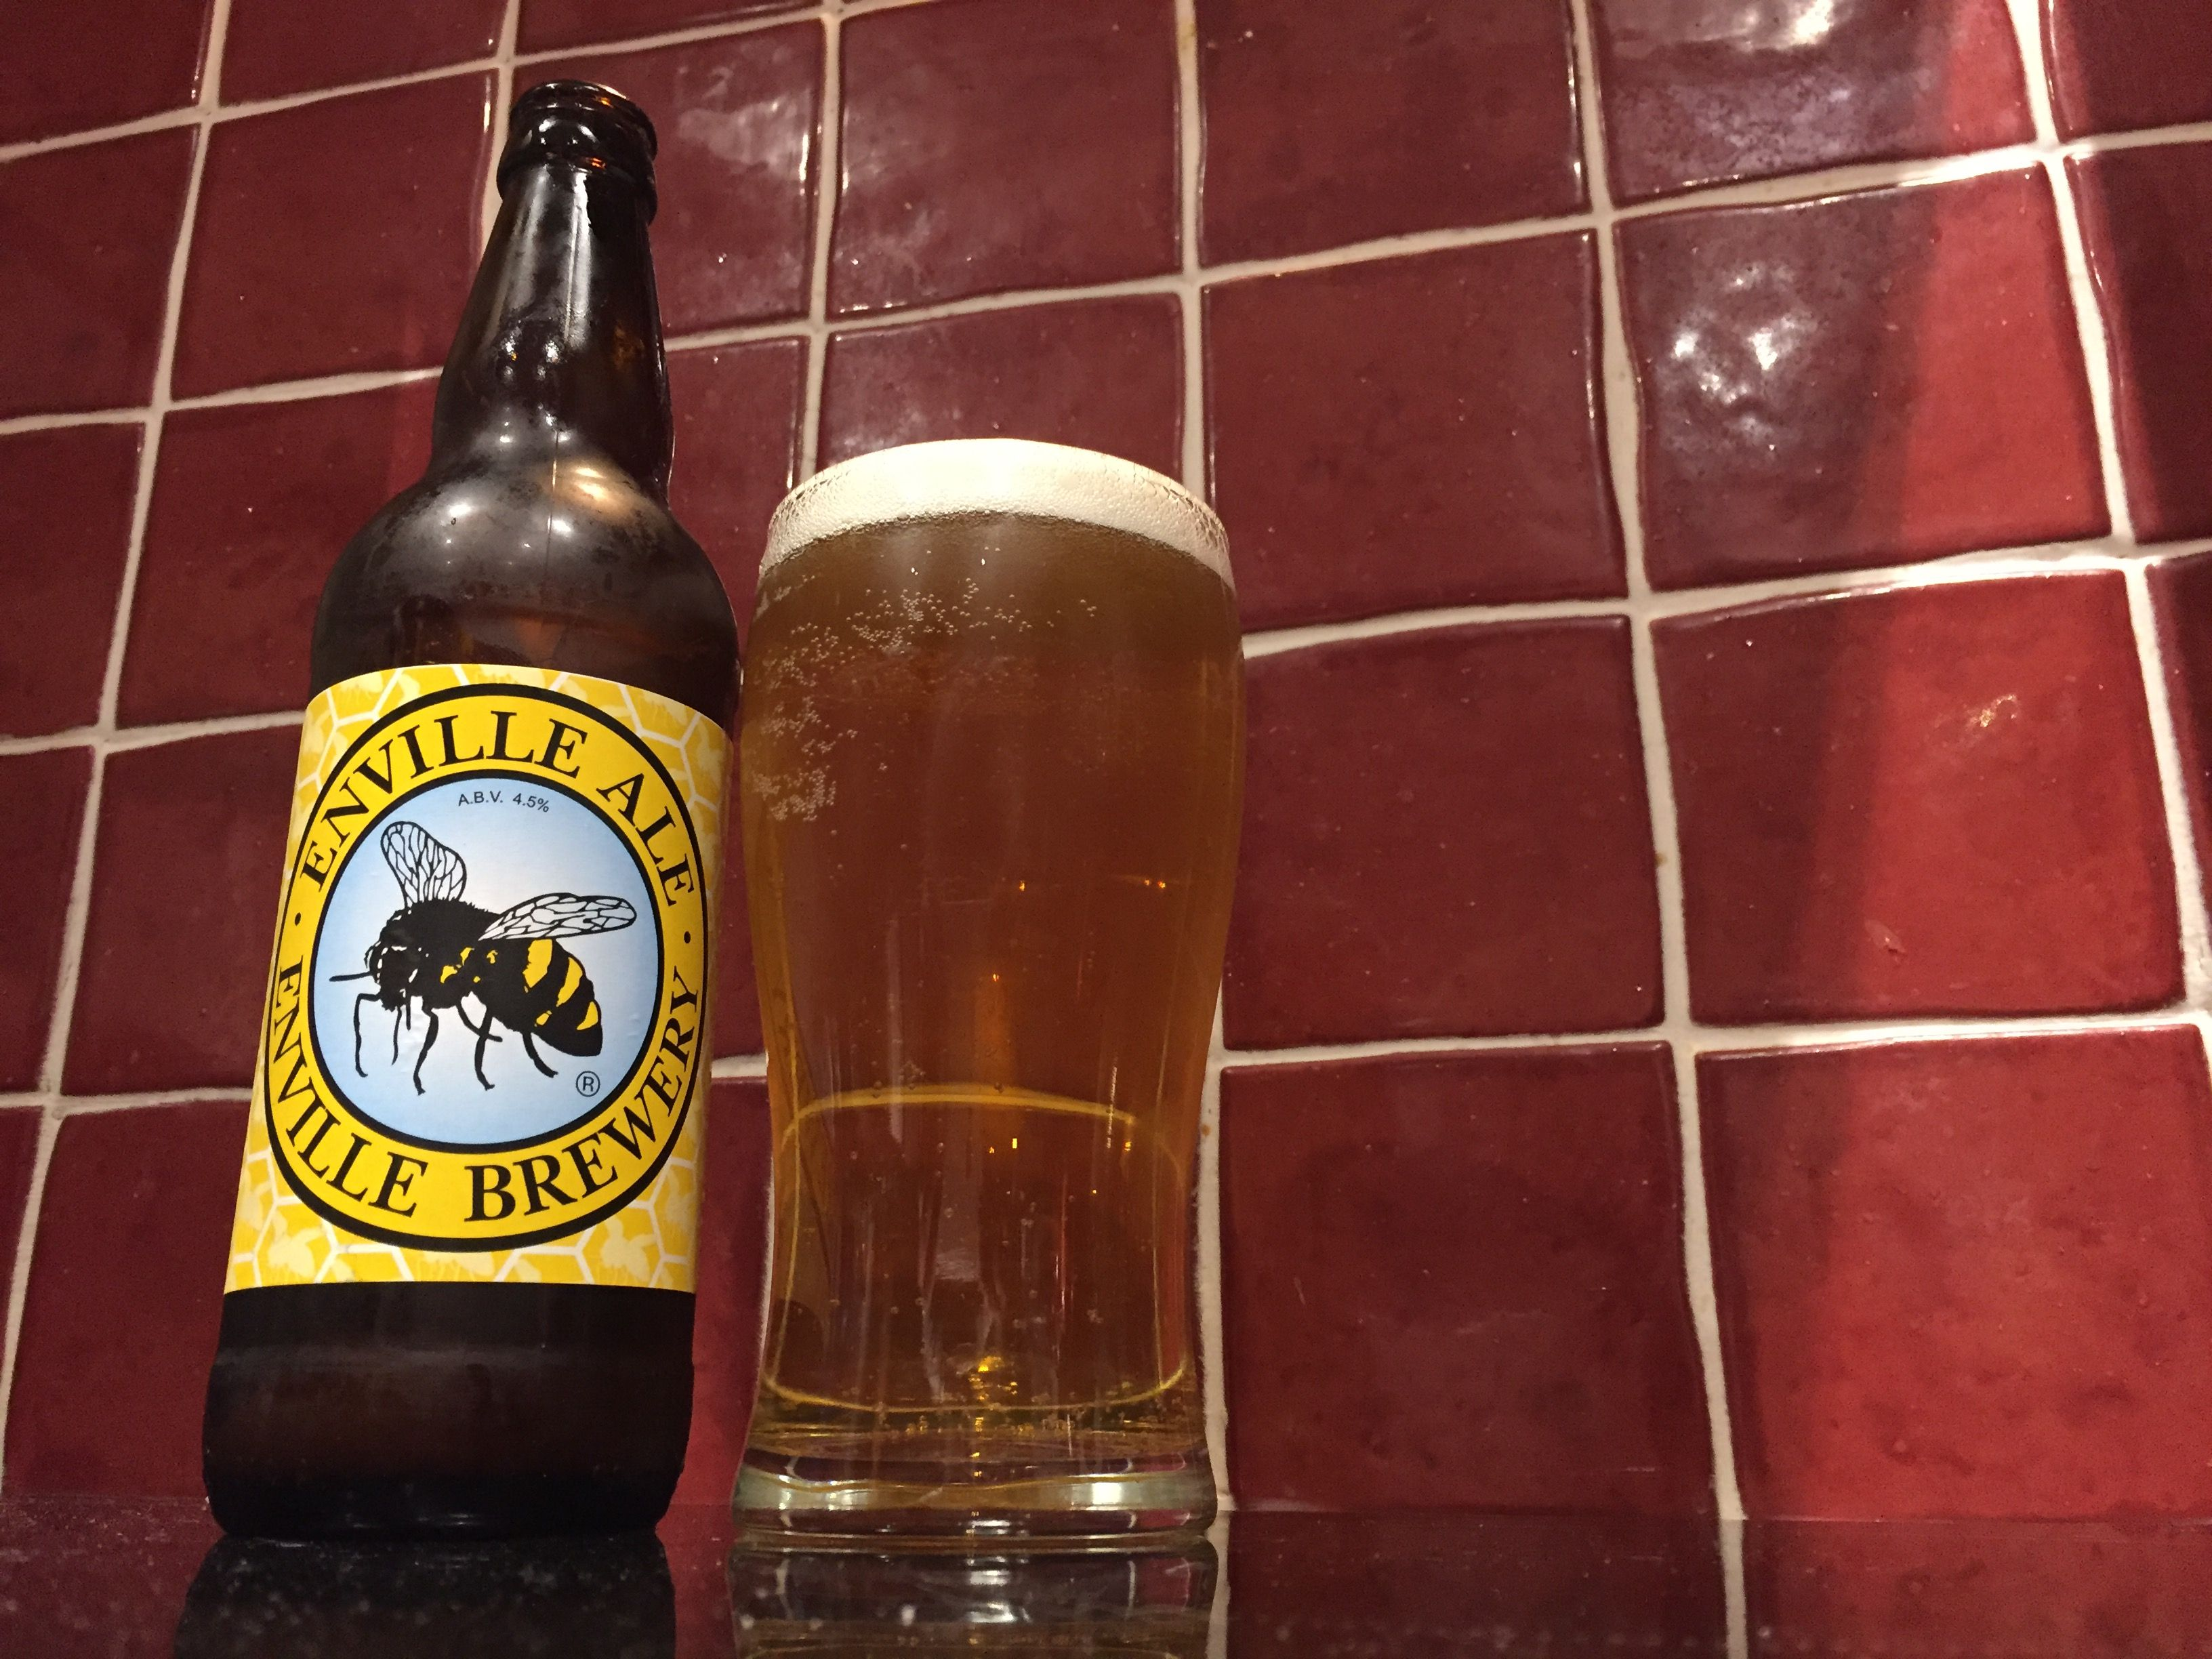 Enville Ale by Enville Brewery